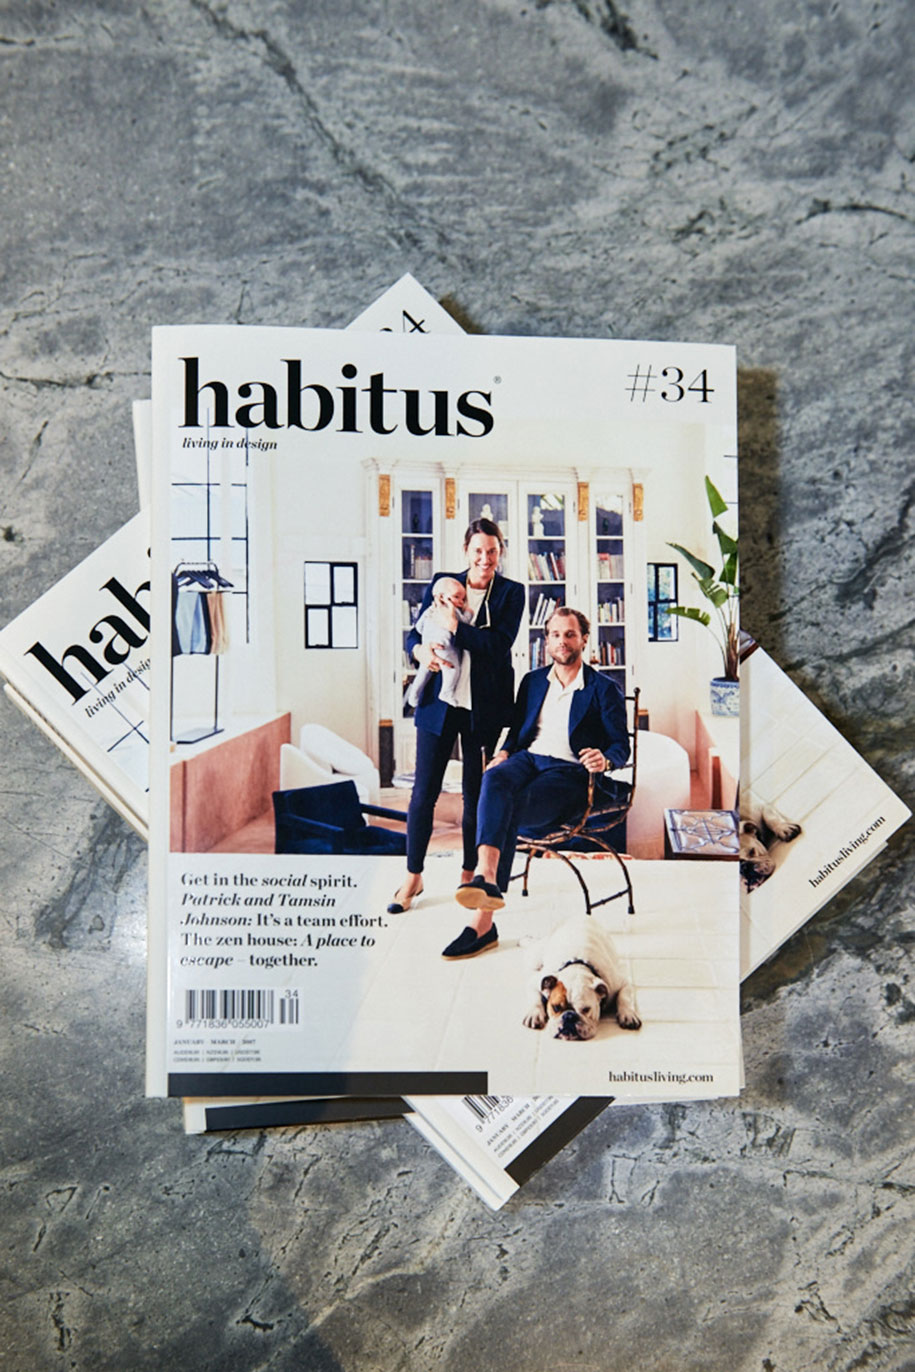 Habitus #34 Launch Party | Habitus Living